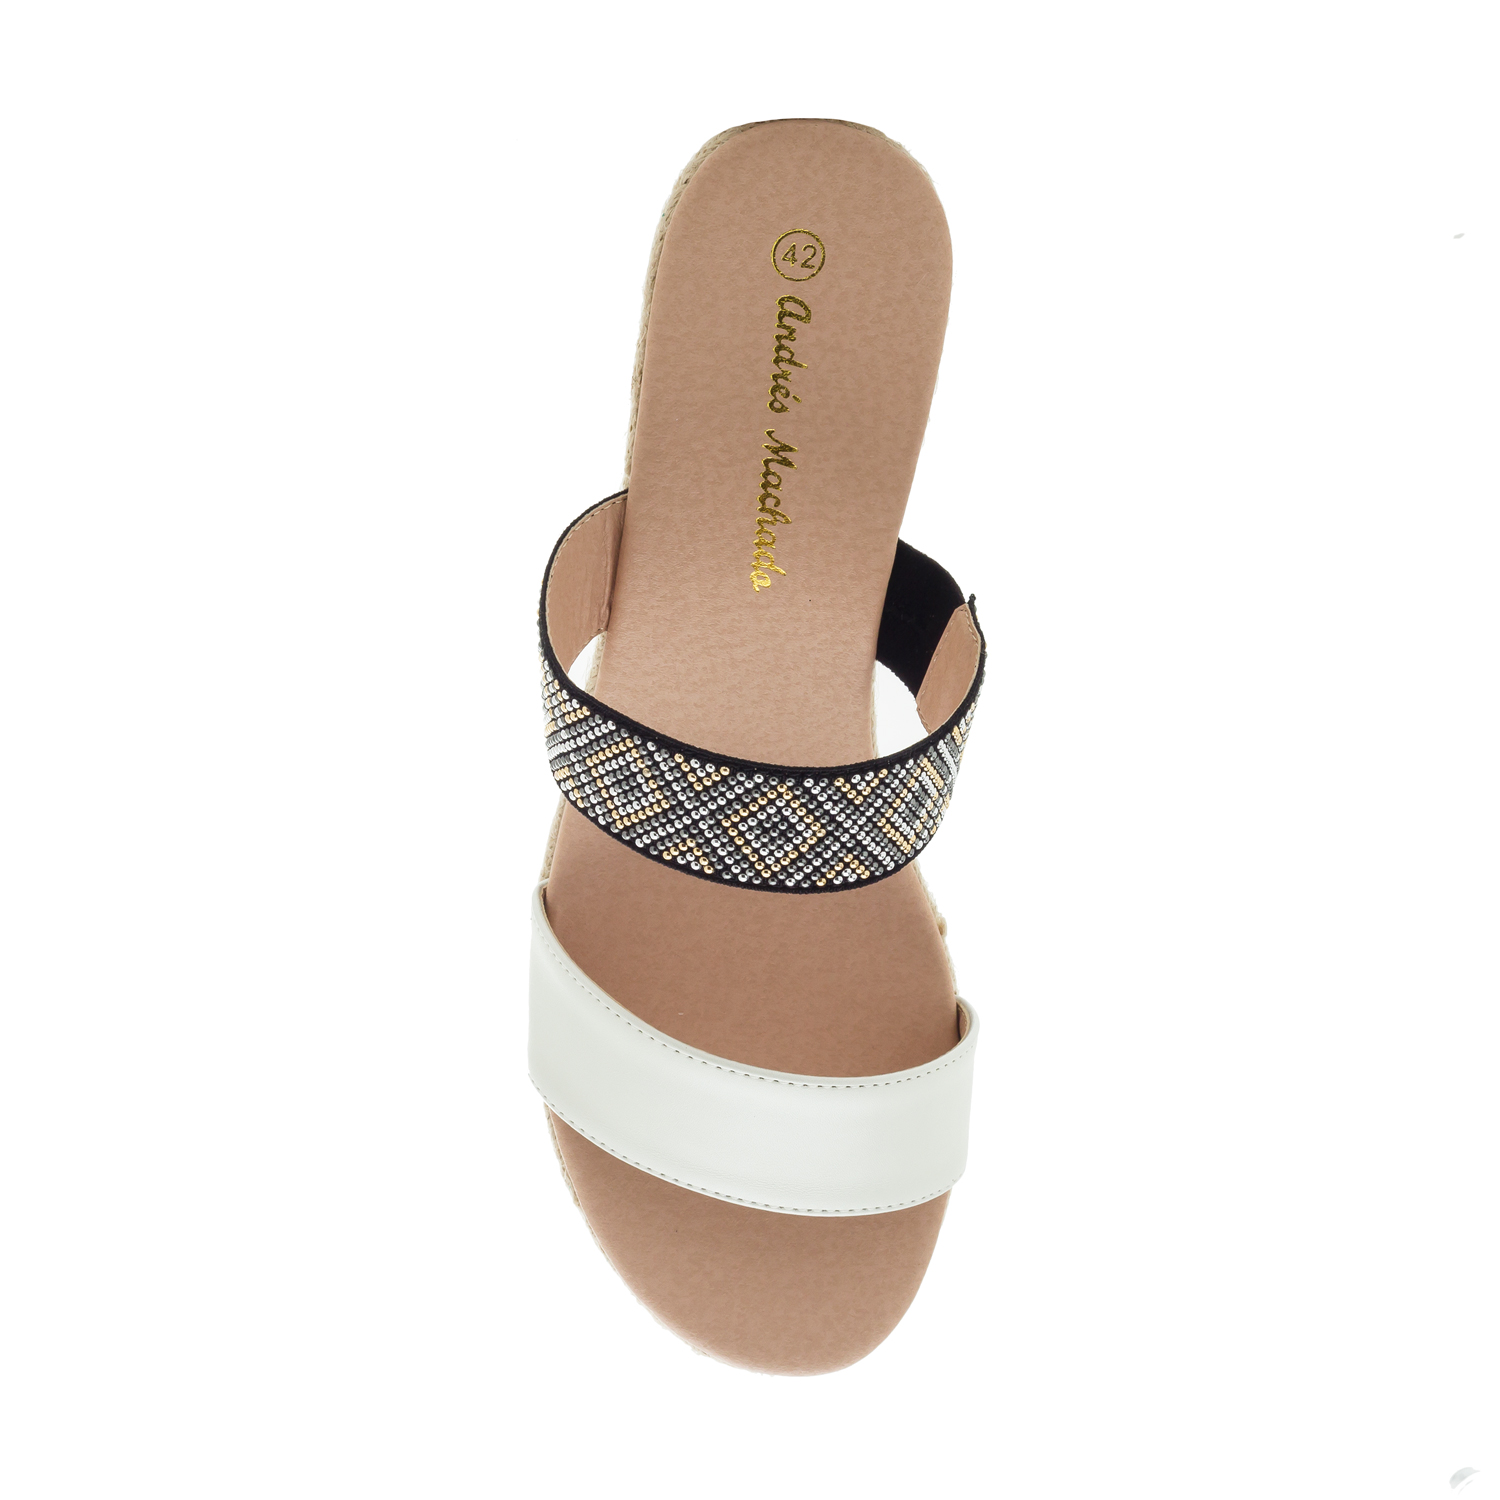 Low-wedges in White faux Leather